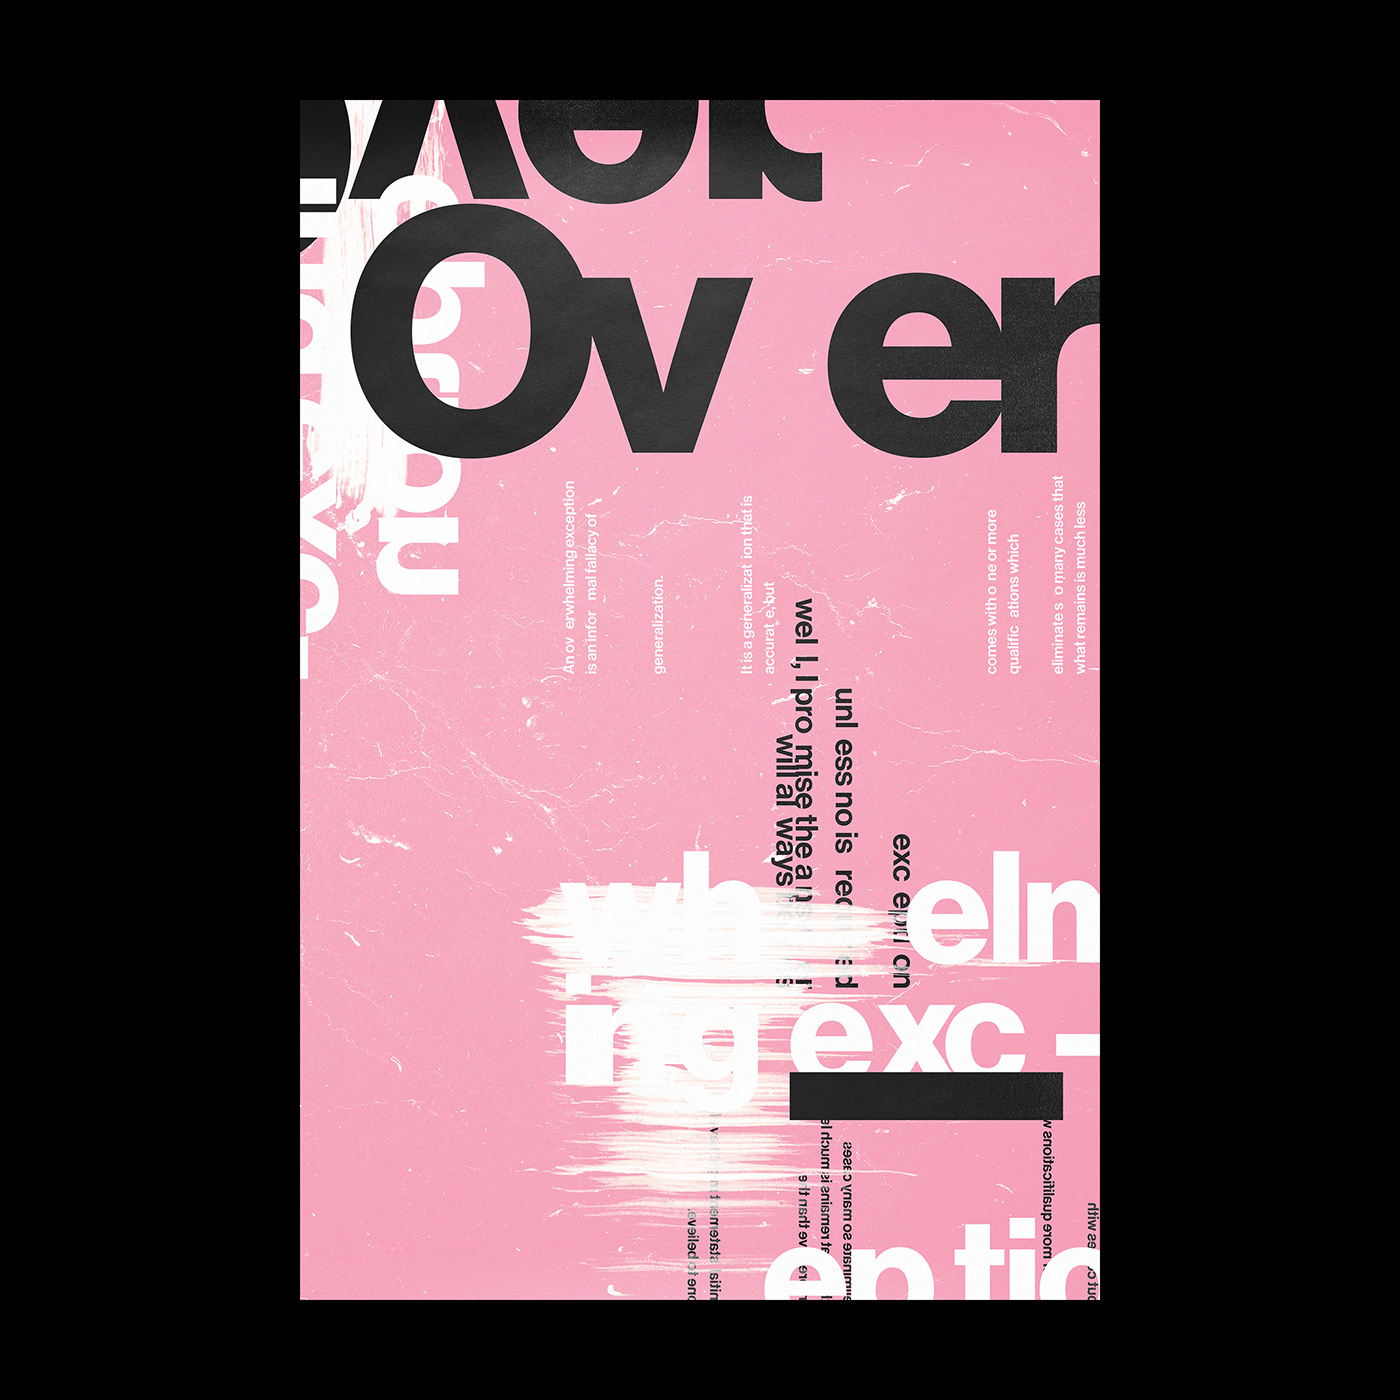 Overwhelming Exception poster by Xtian Miller